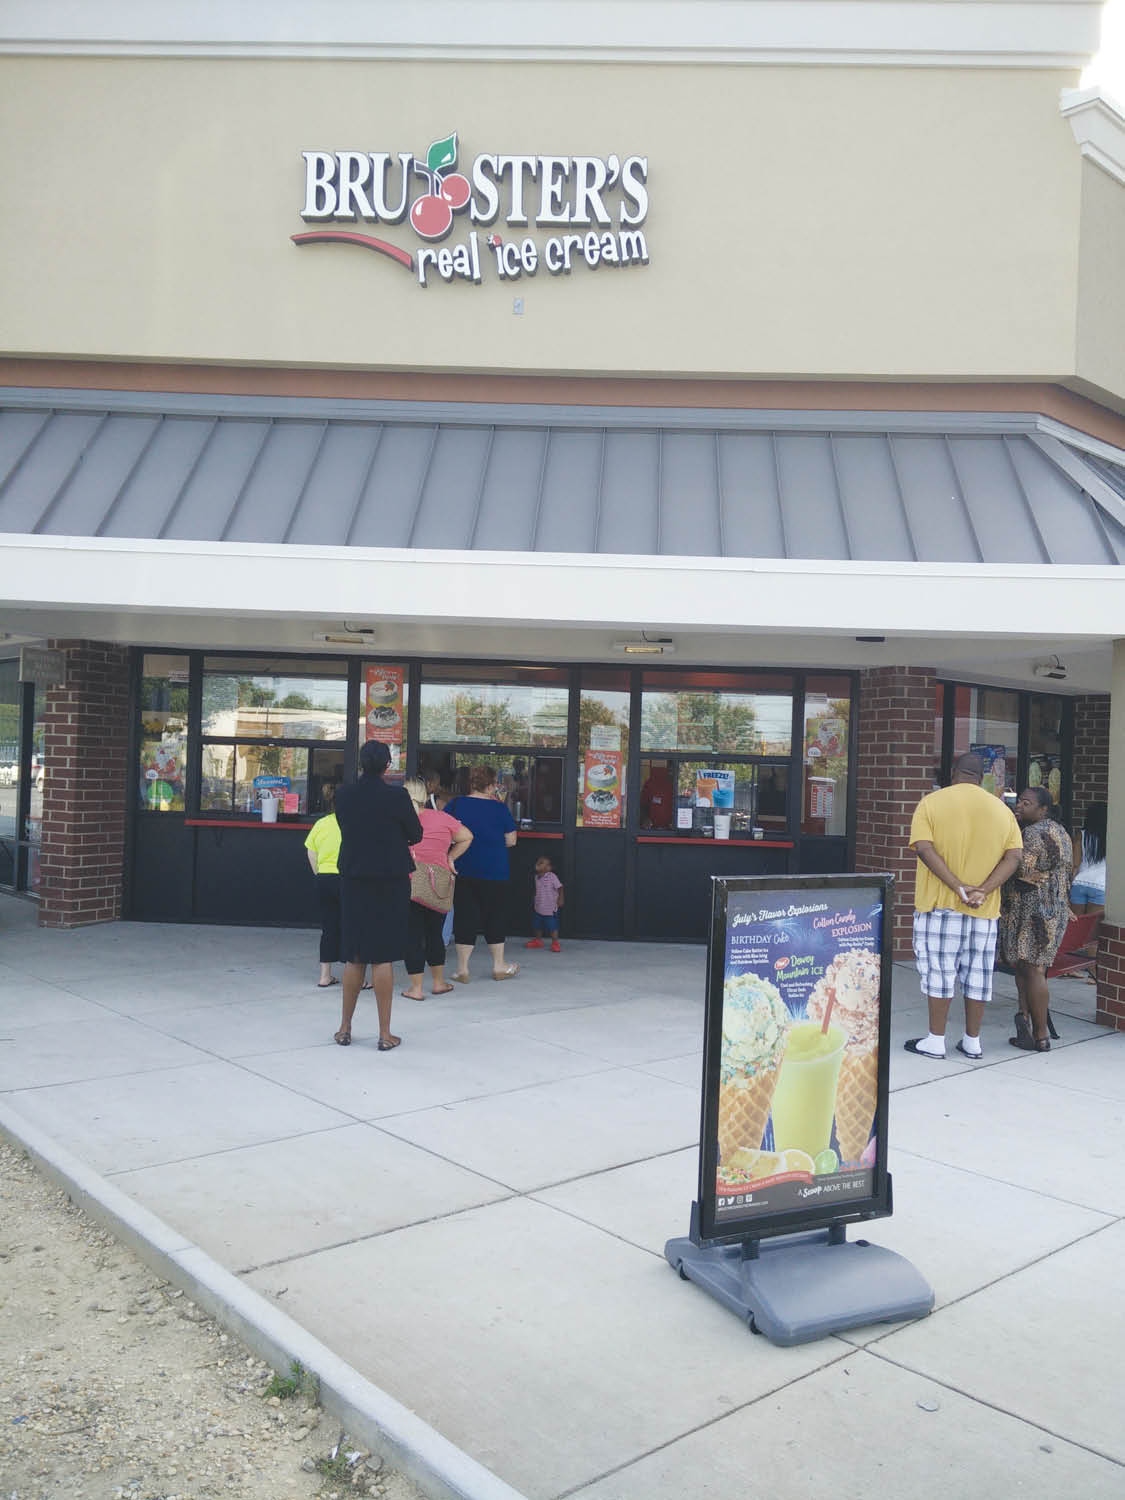 bruster's real ice cream in waldorf, maryland